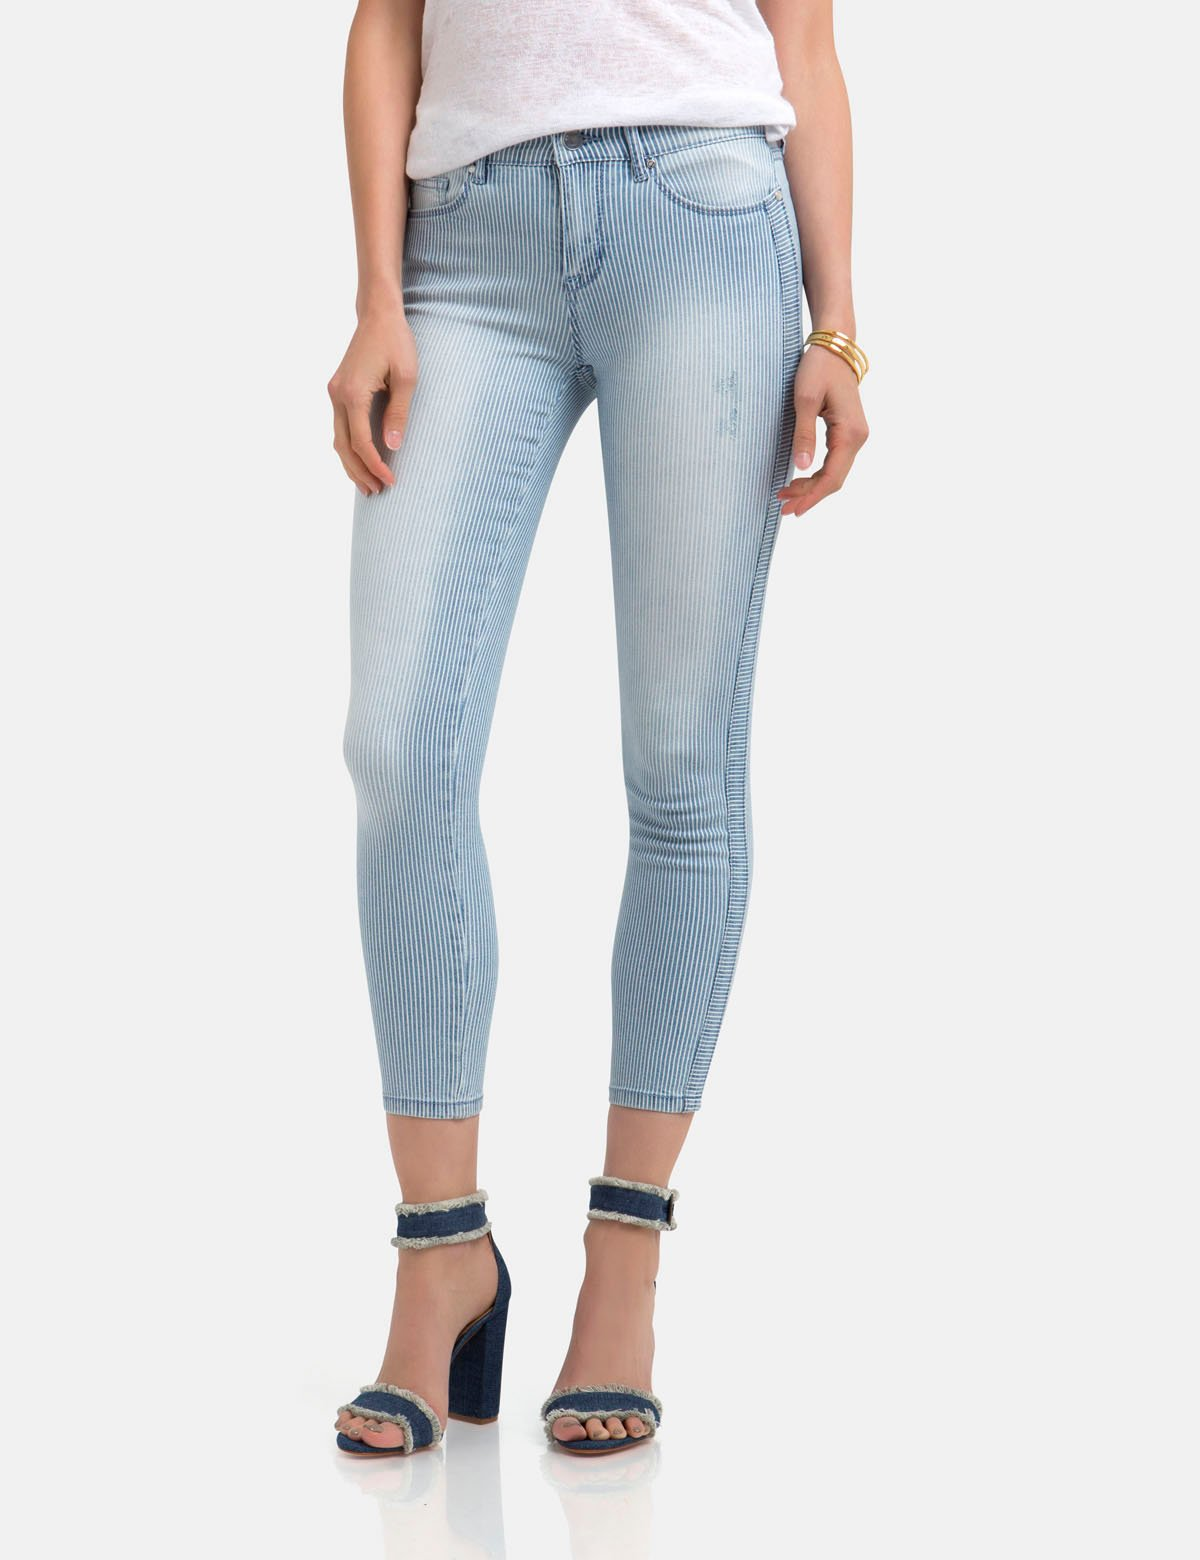 STRETCH RAILROAD STRIPE SKINNY CROP JEANS - U.S. Polo Assn.